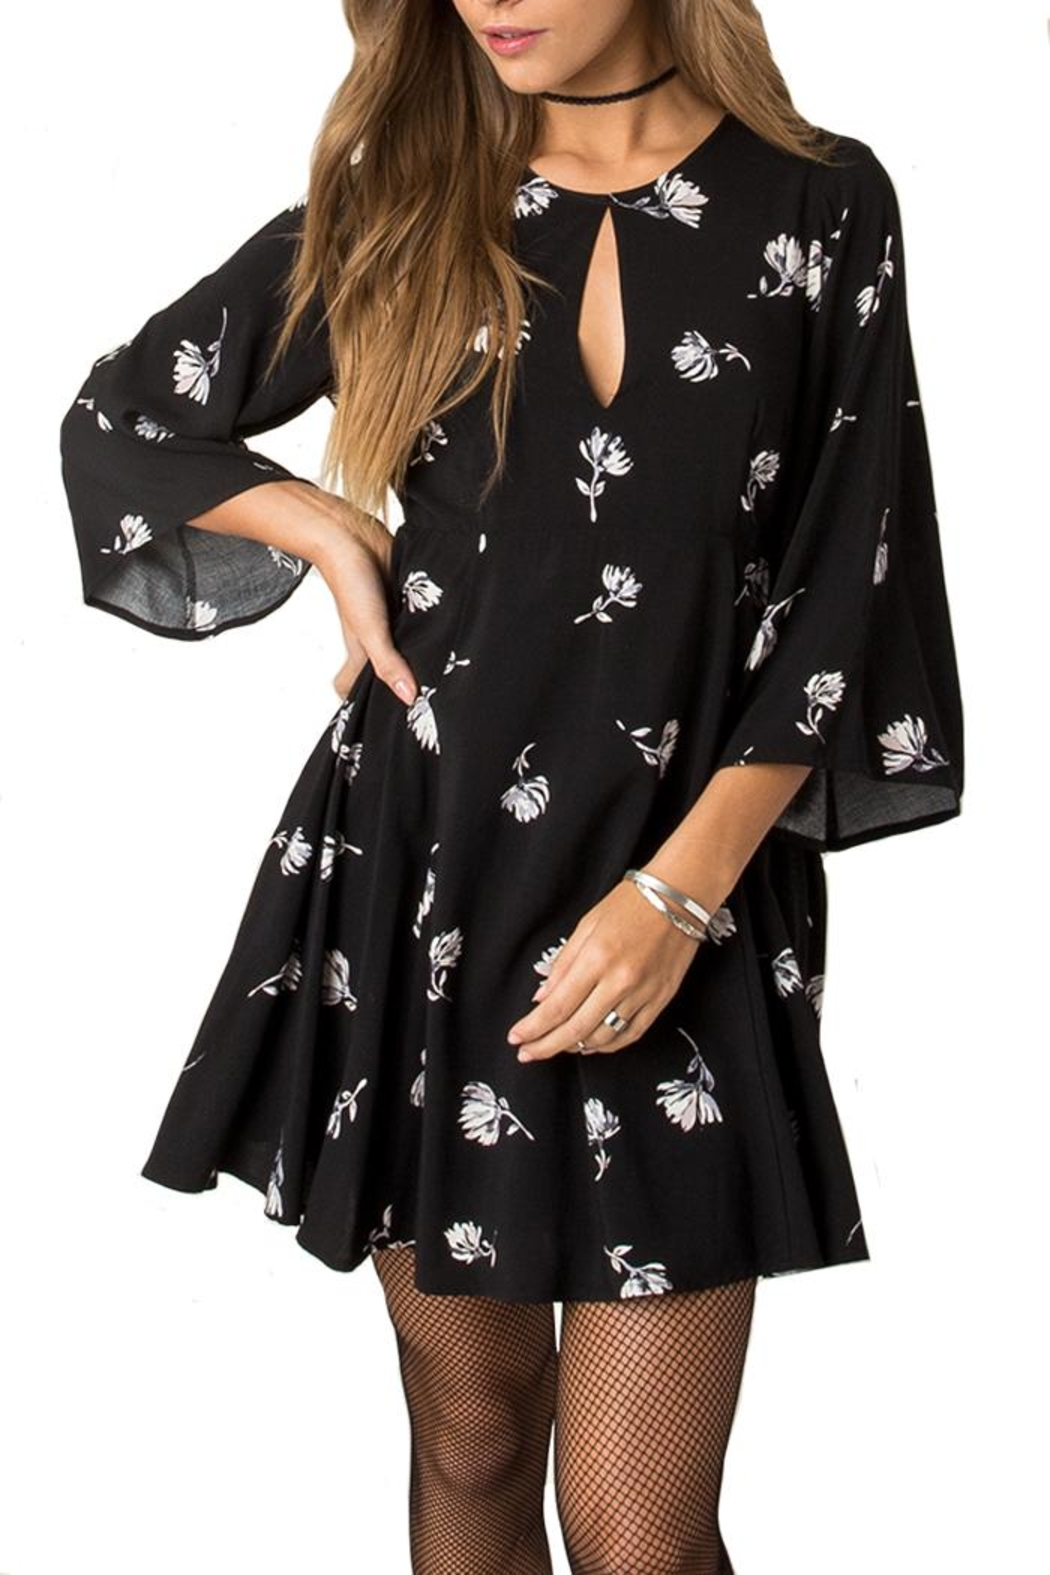 Others Follow  Floral Key Hole Dress - Main Image